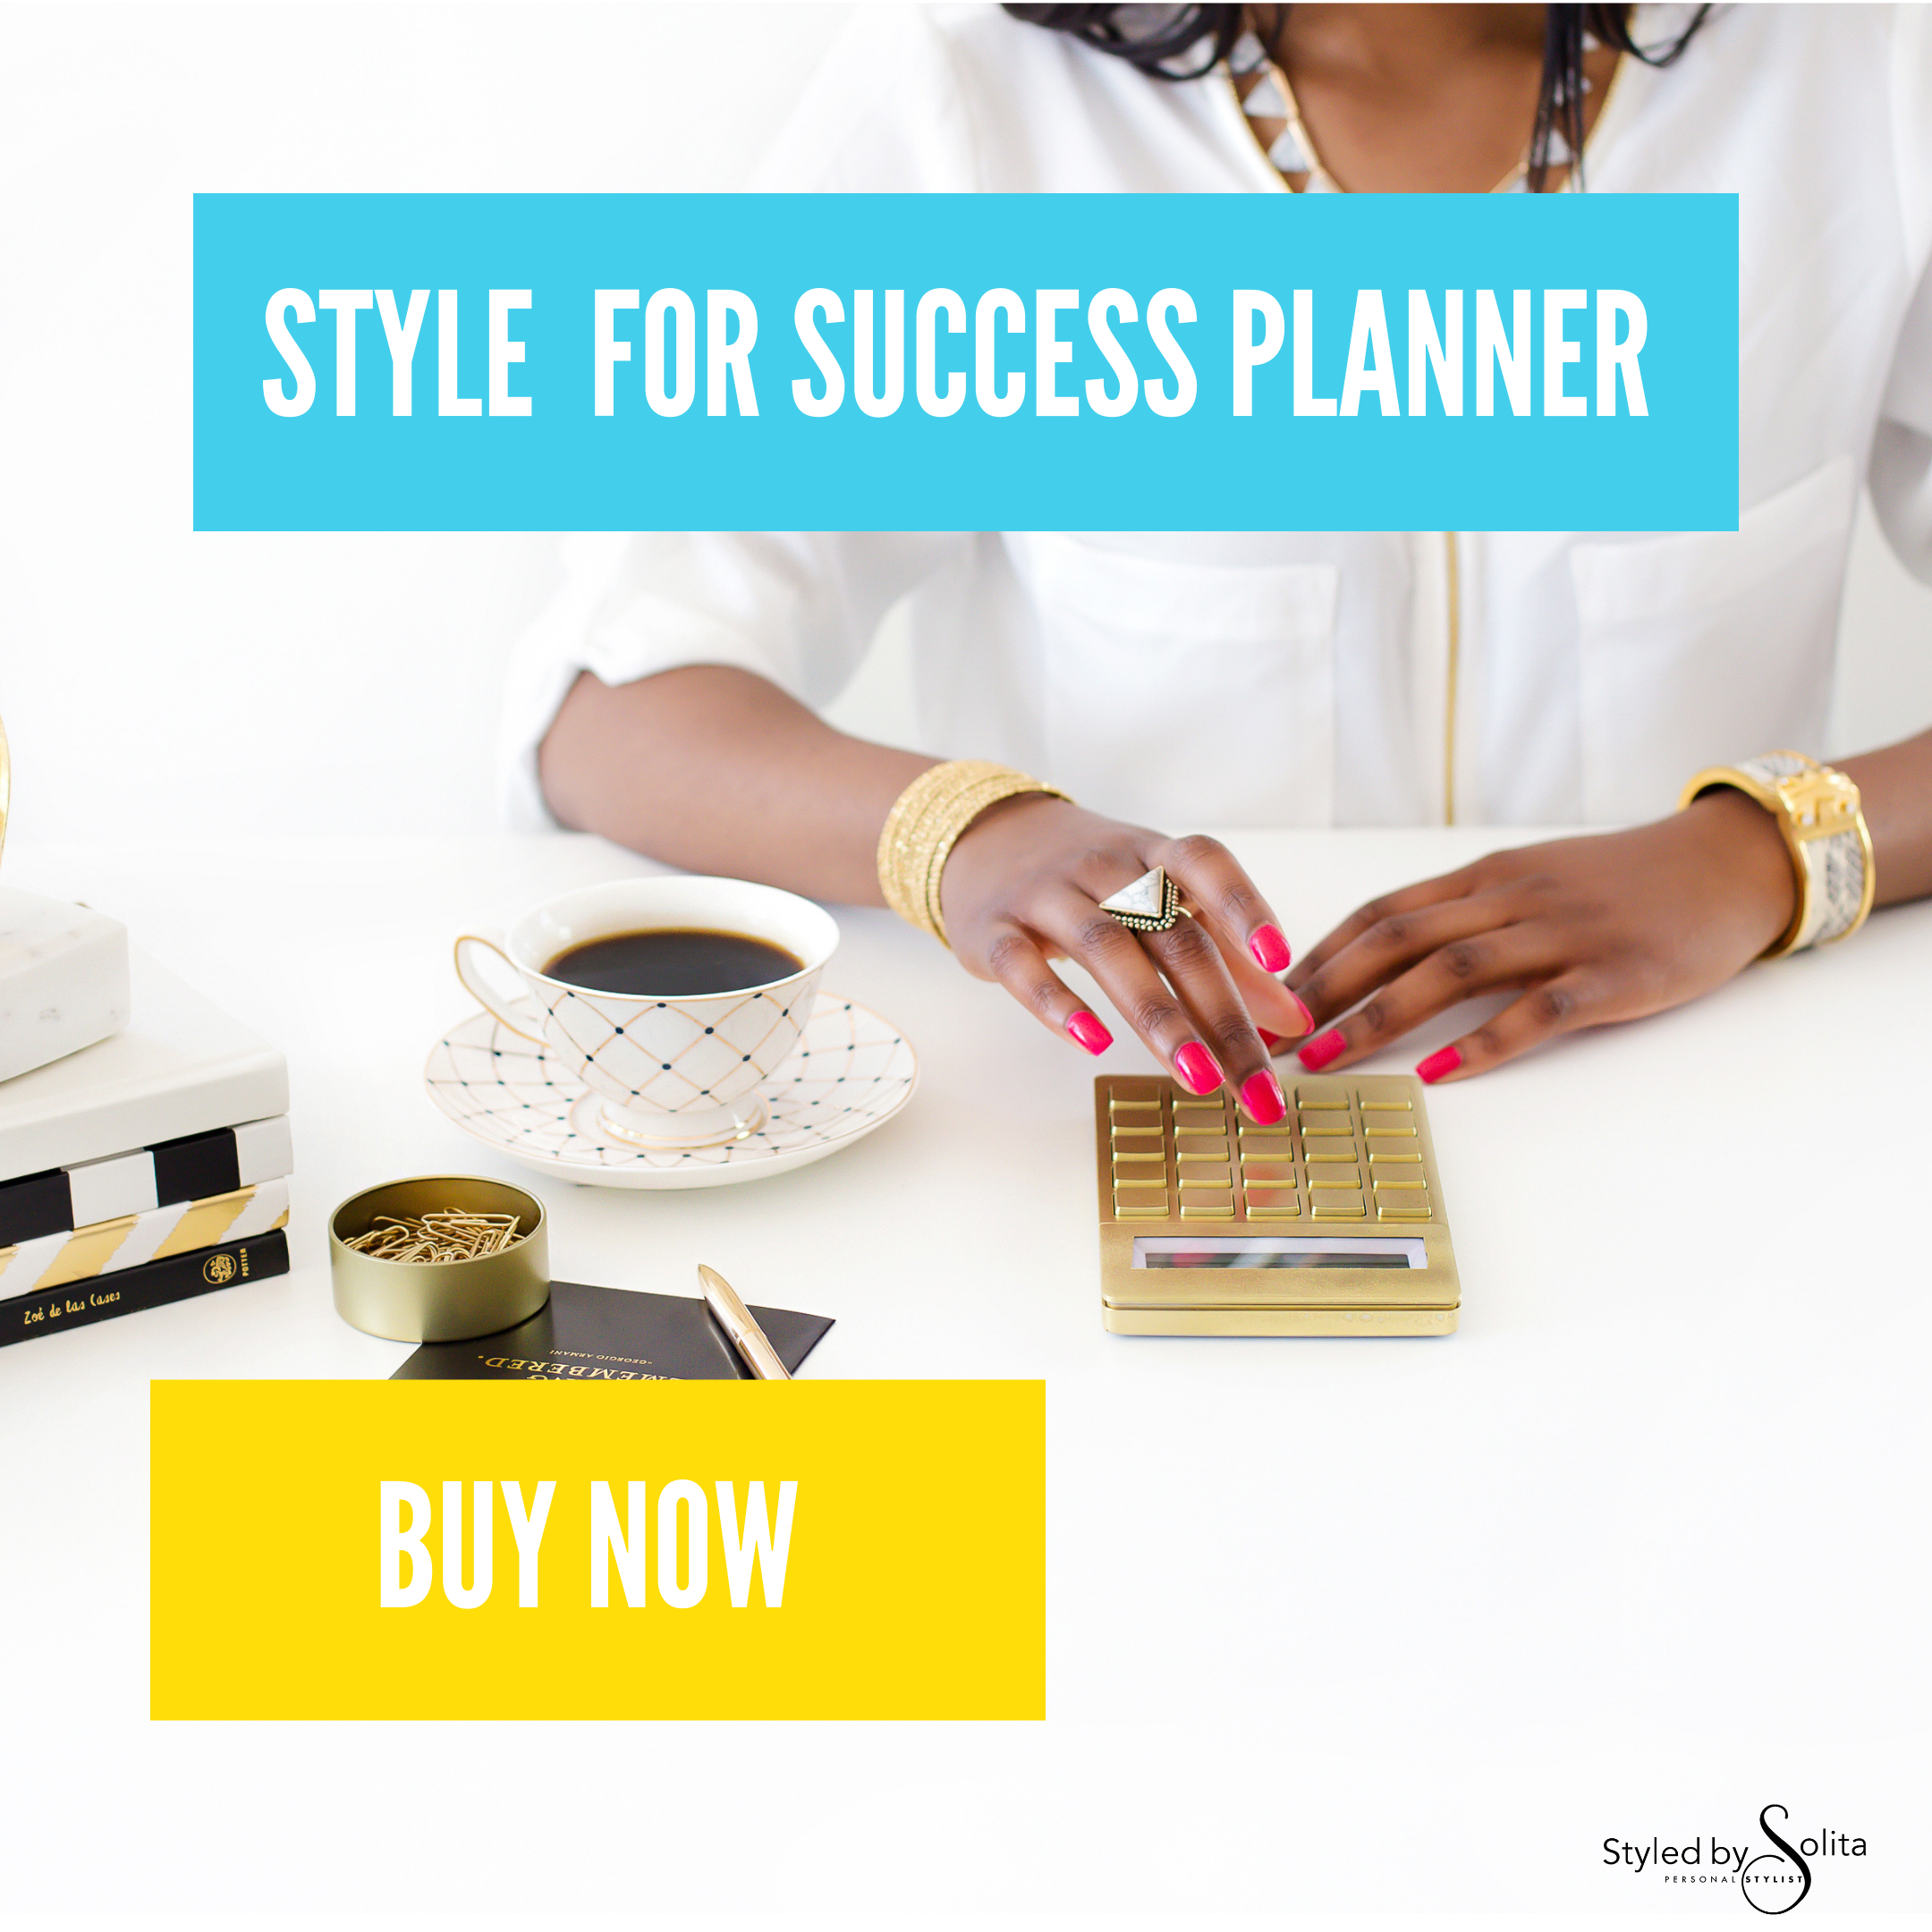 Copy of Style For Success Planner IG Mockup (1).png